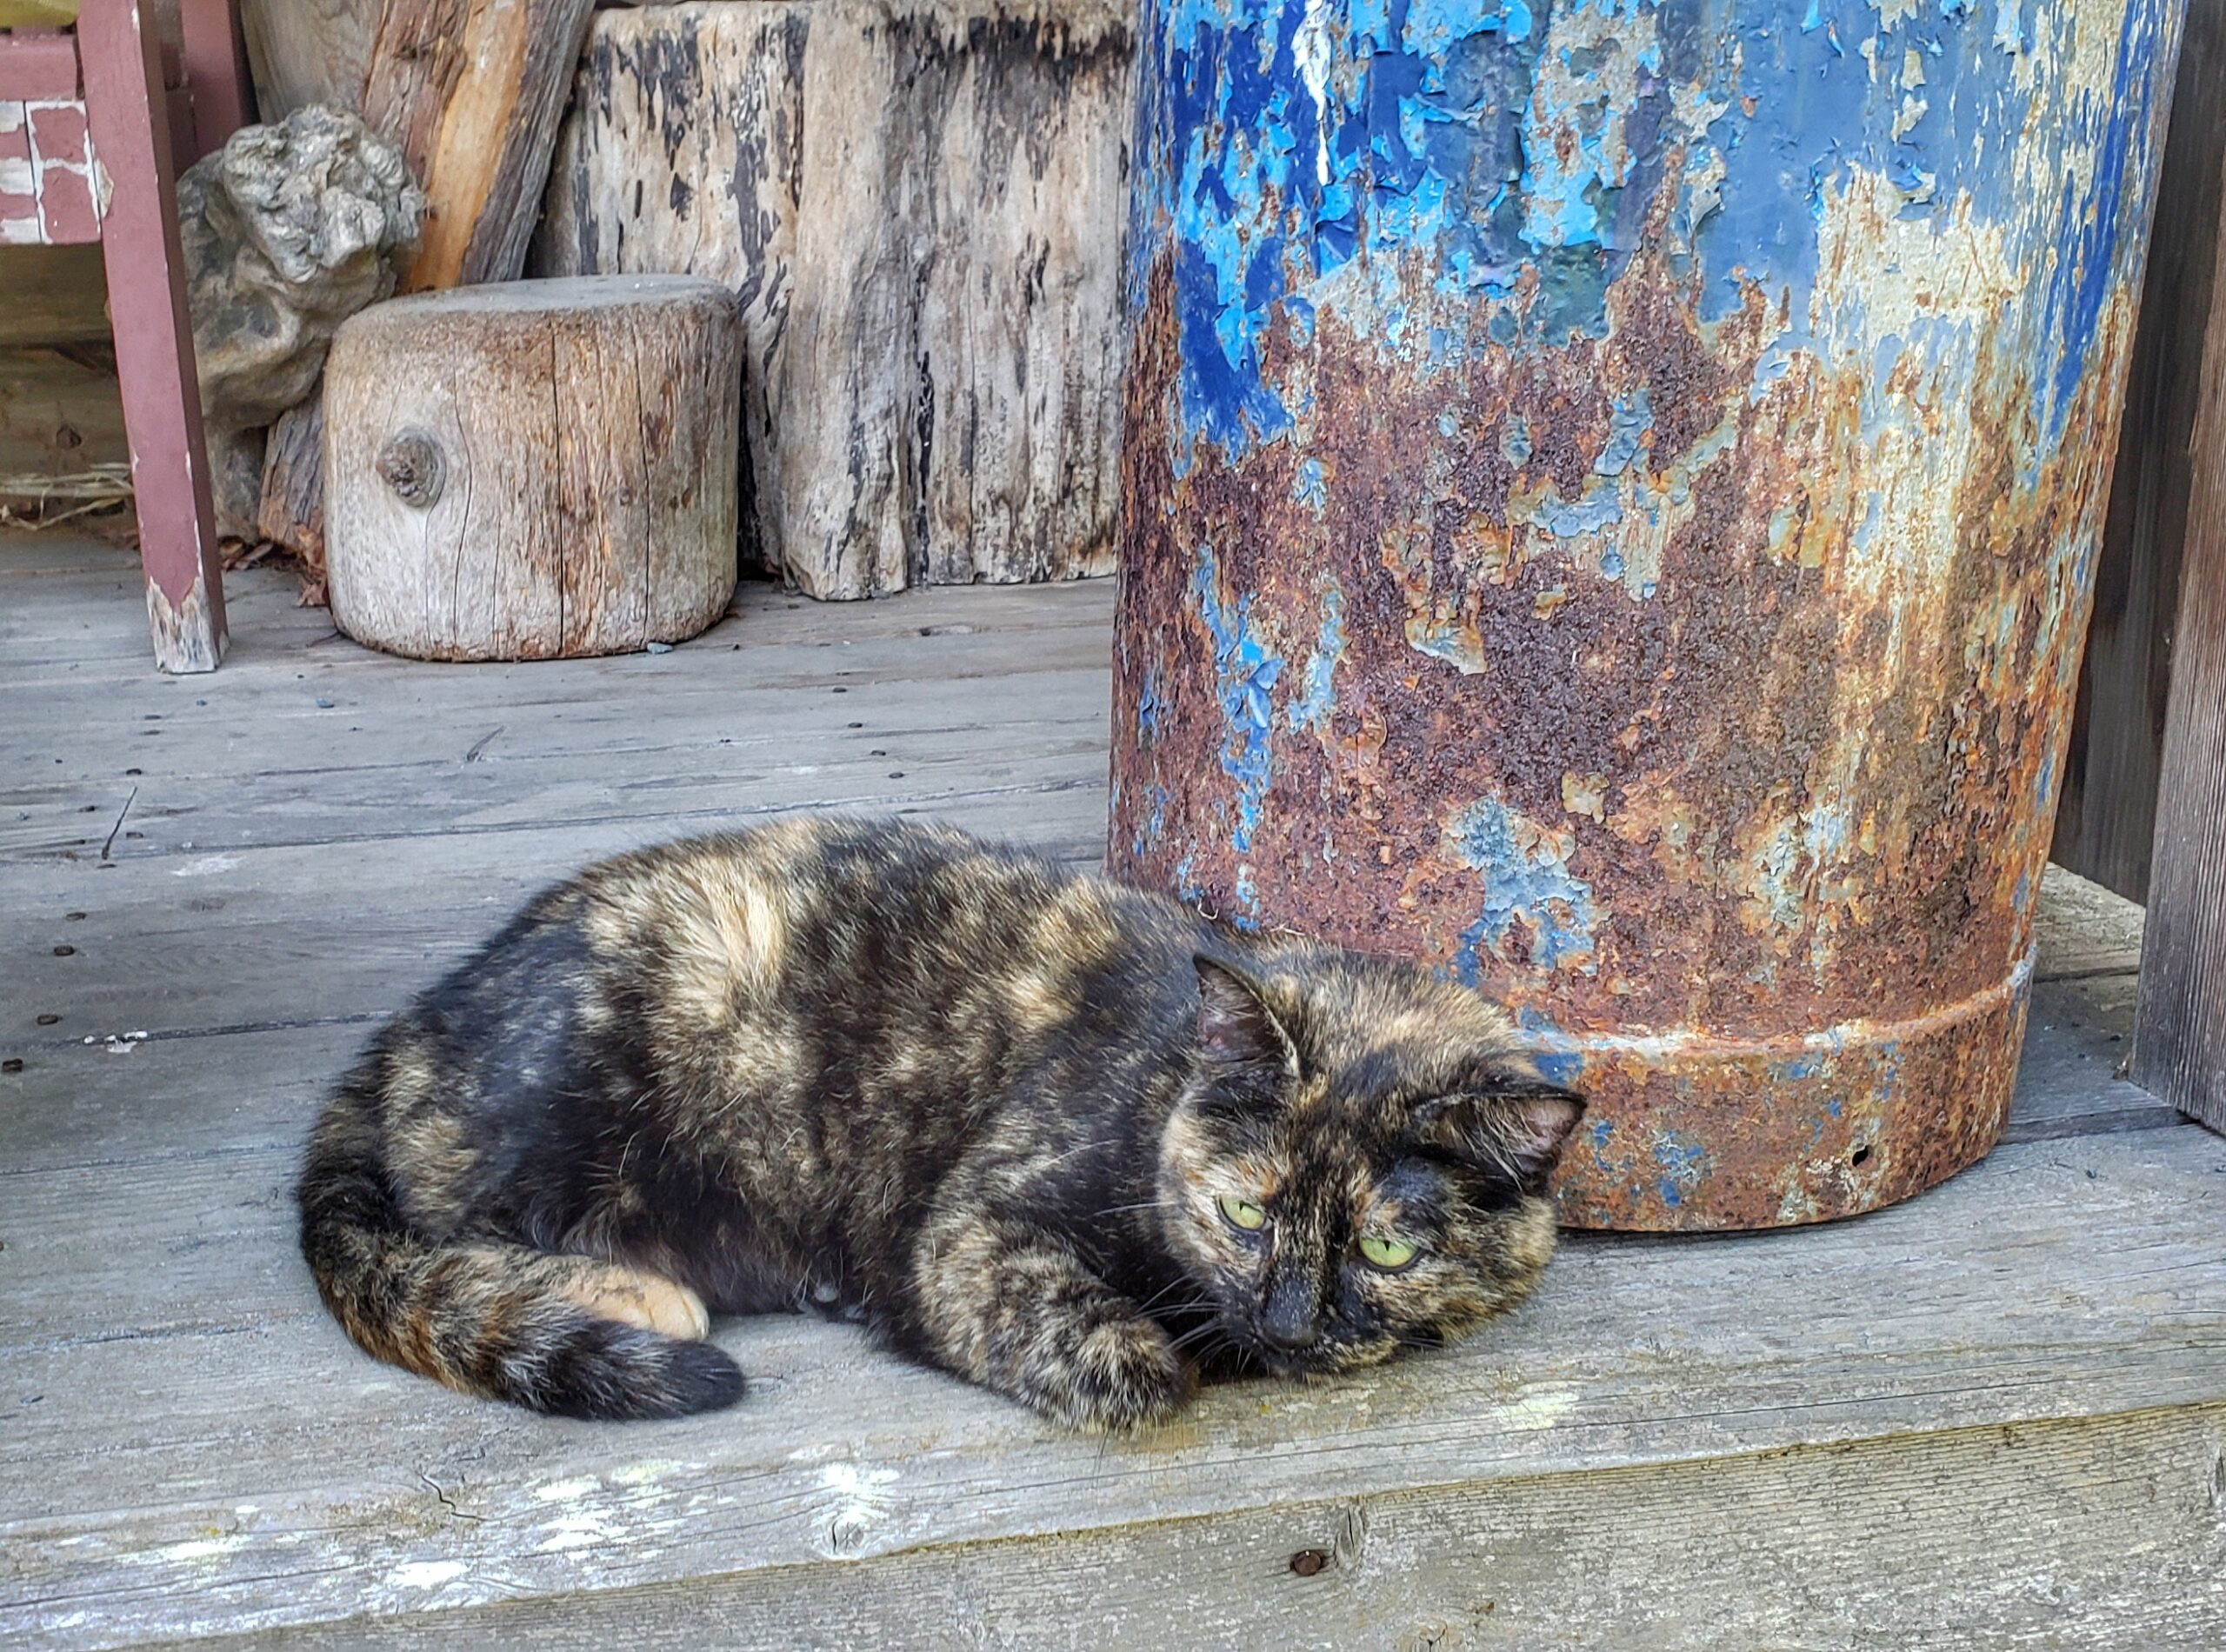 resident cat at Kilby Historic Site